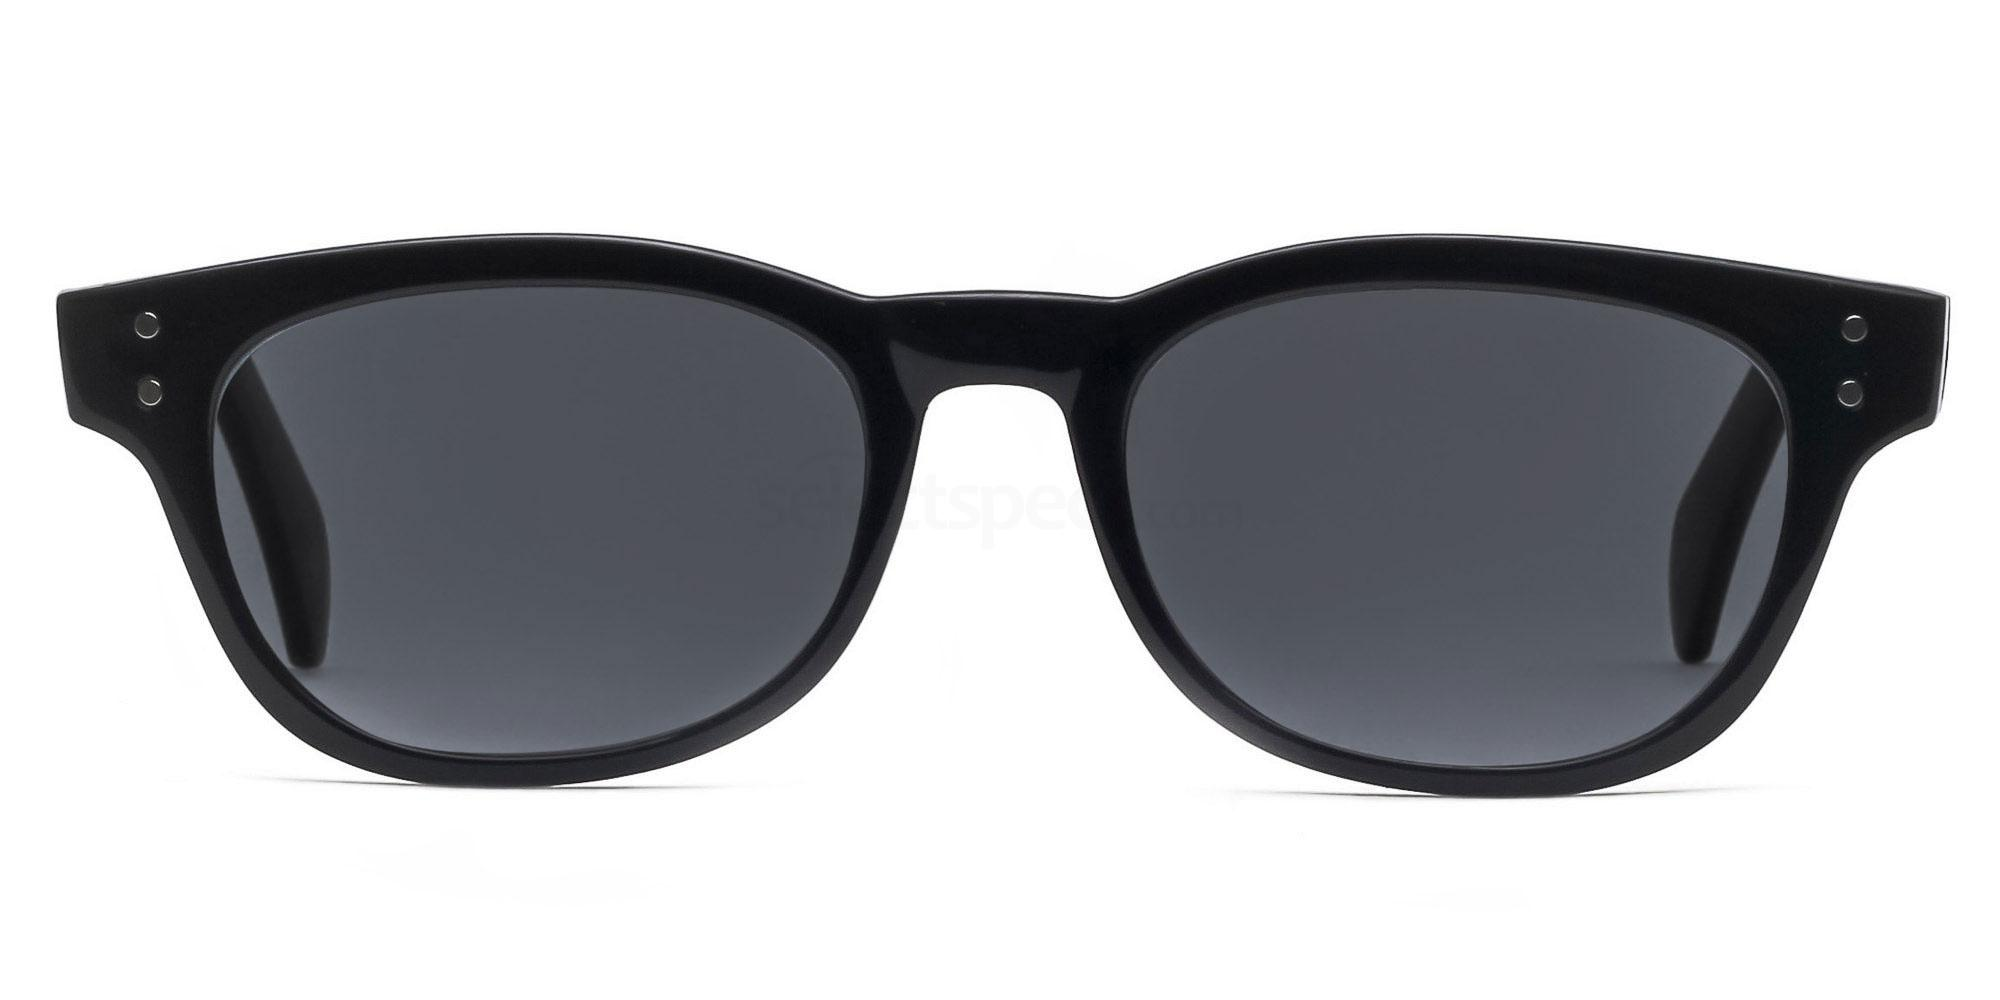 C01 Dark Grey P2249 Shiny Black (Sunglasses) Sunglasses, Savannah